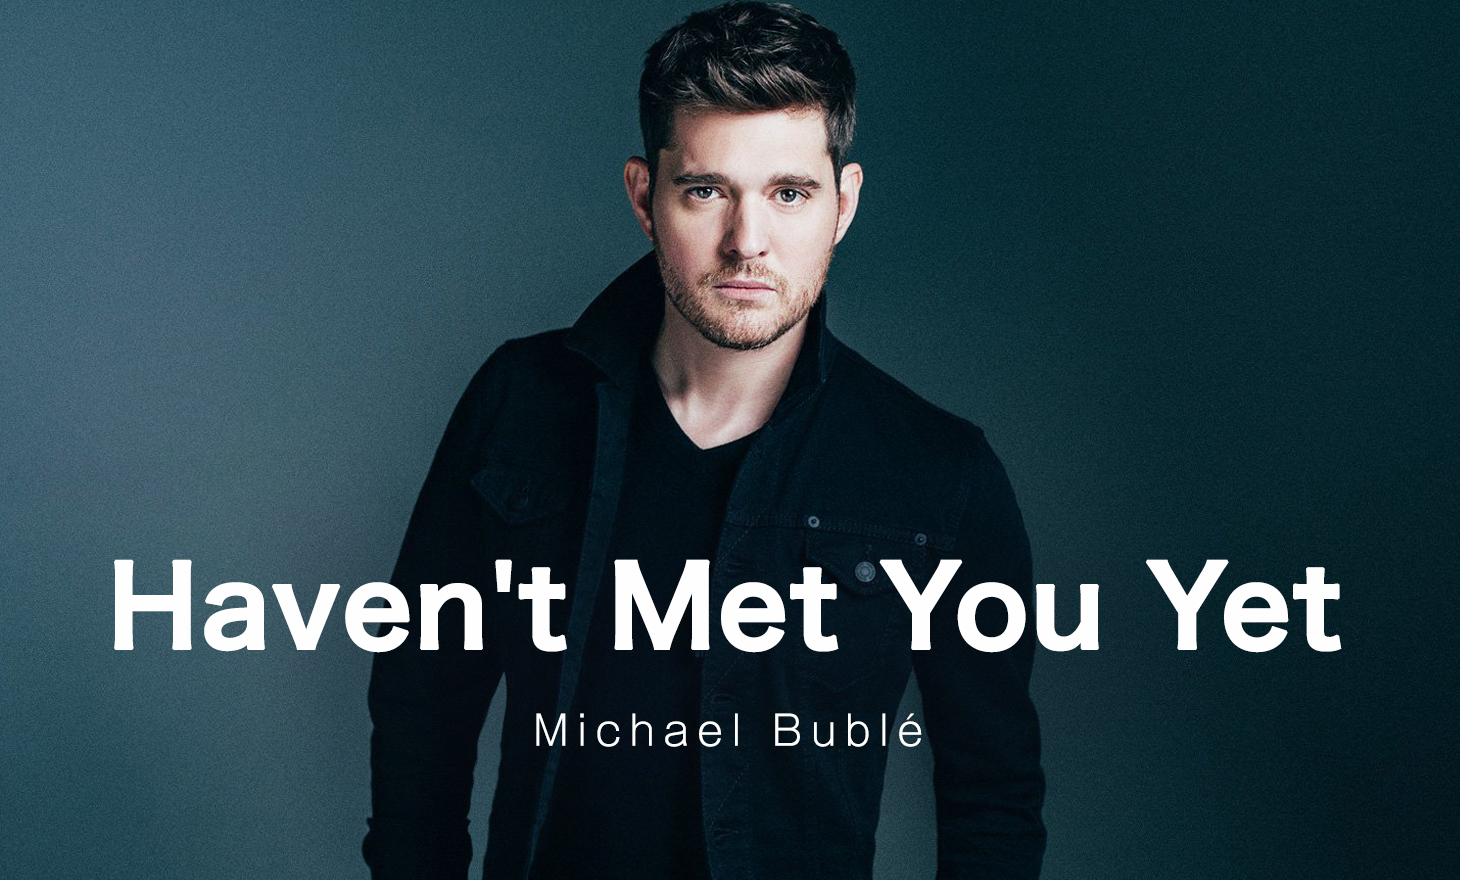 Michael Bublé : Haven't Met You Yet